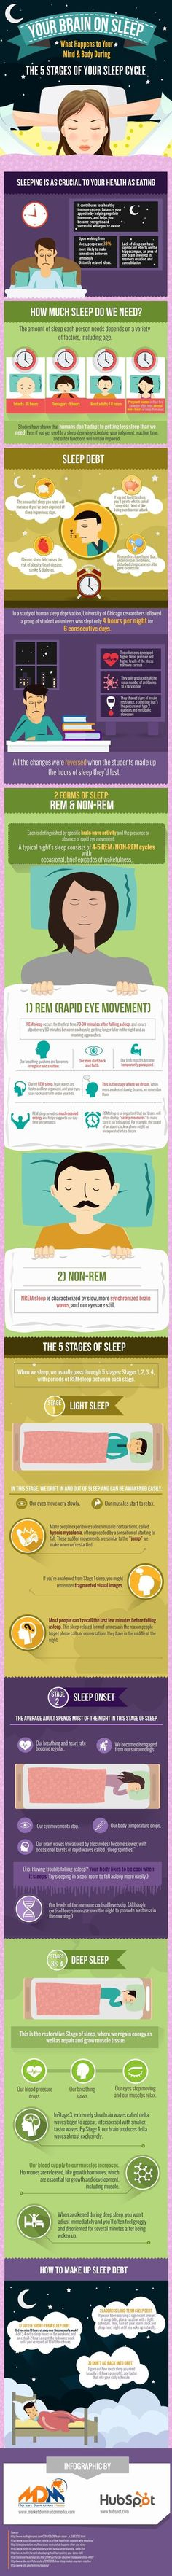 Here's What Sleep Does To Your Body